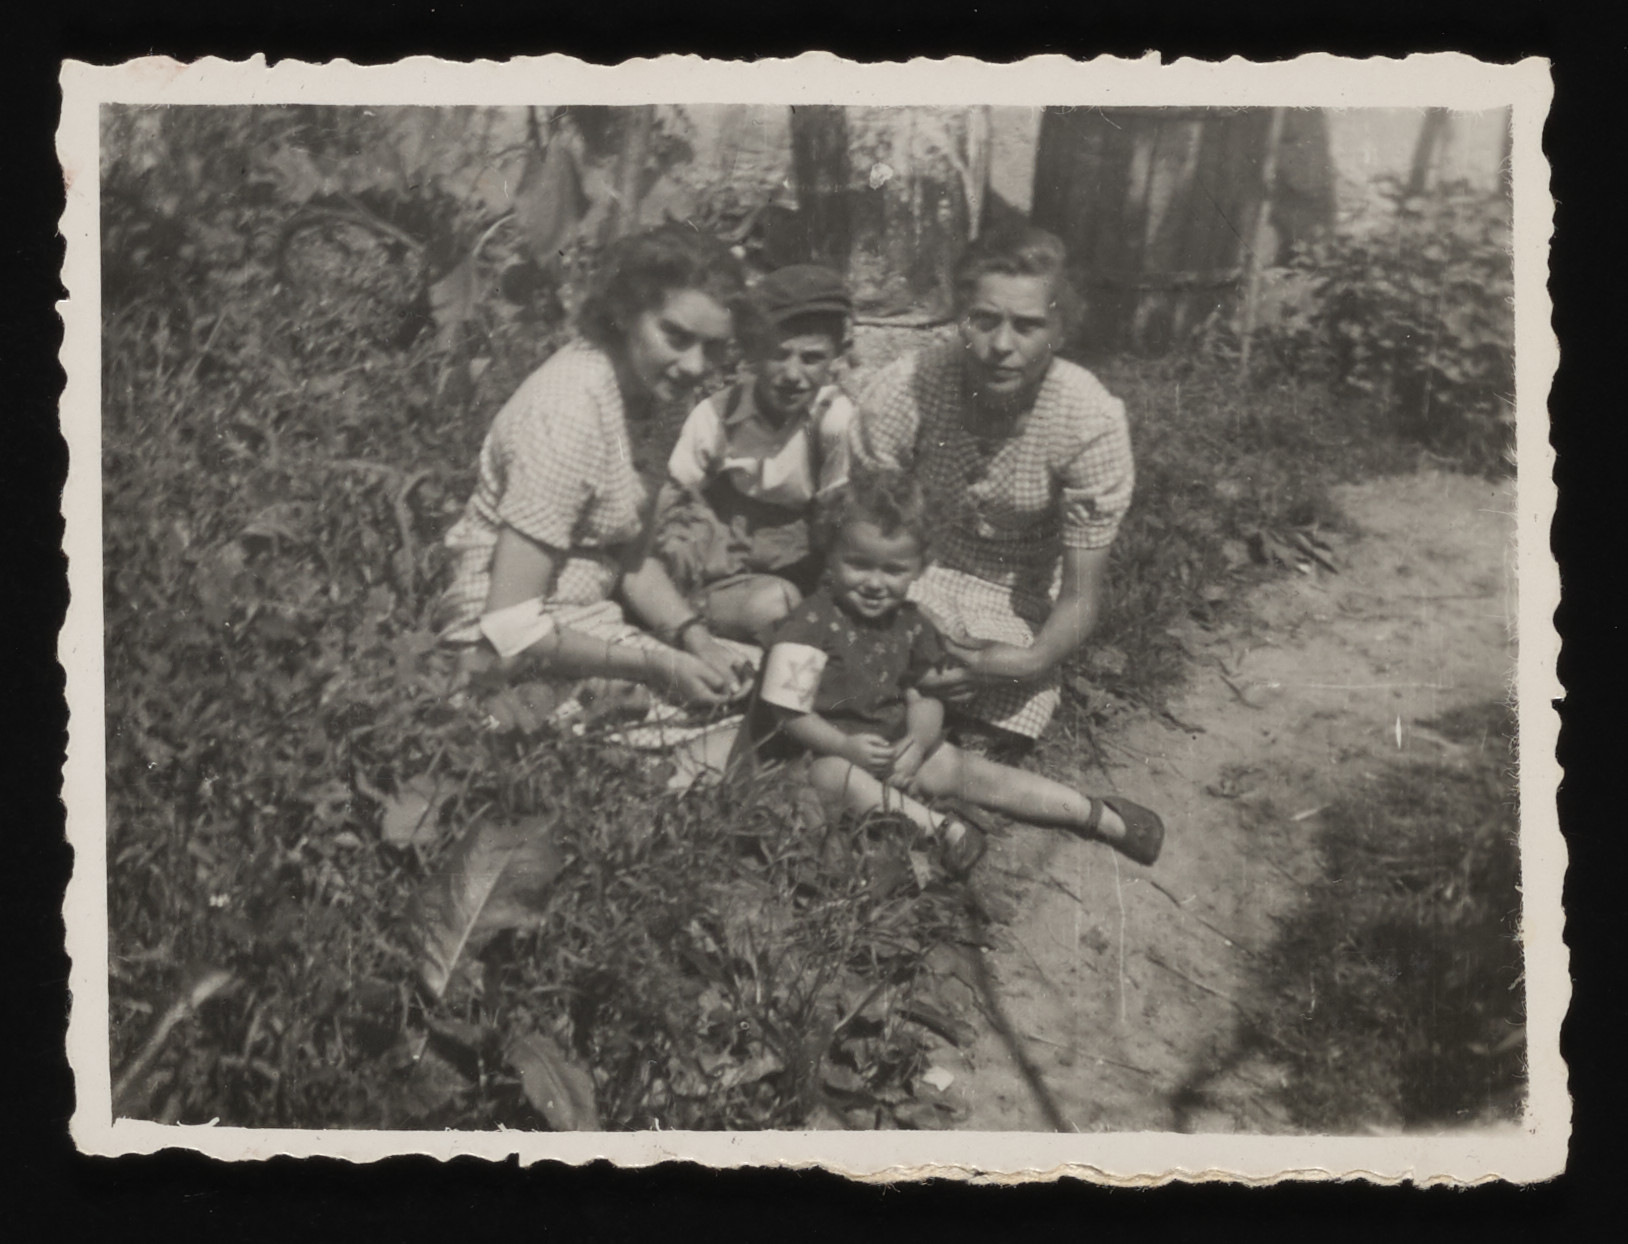 Members of the Saleschütz family sit in the grass in the Kolbuszowa ghetto.    Pictured are Rachel (left) and Matla (right) Saleschütz.  Seated between them are their niece and nephew, Blimcia (front) and Shulim (behind).